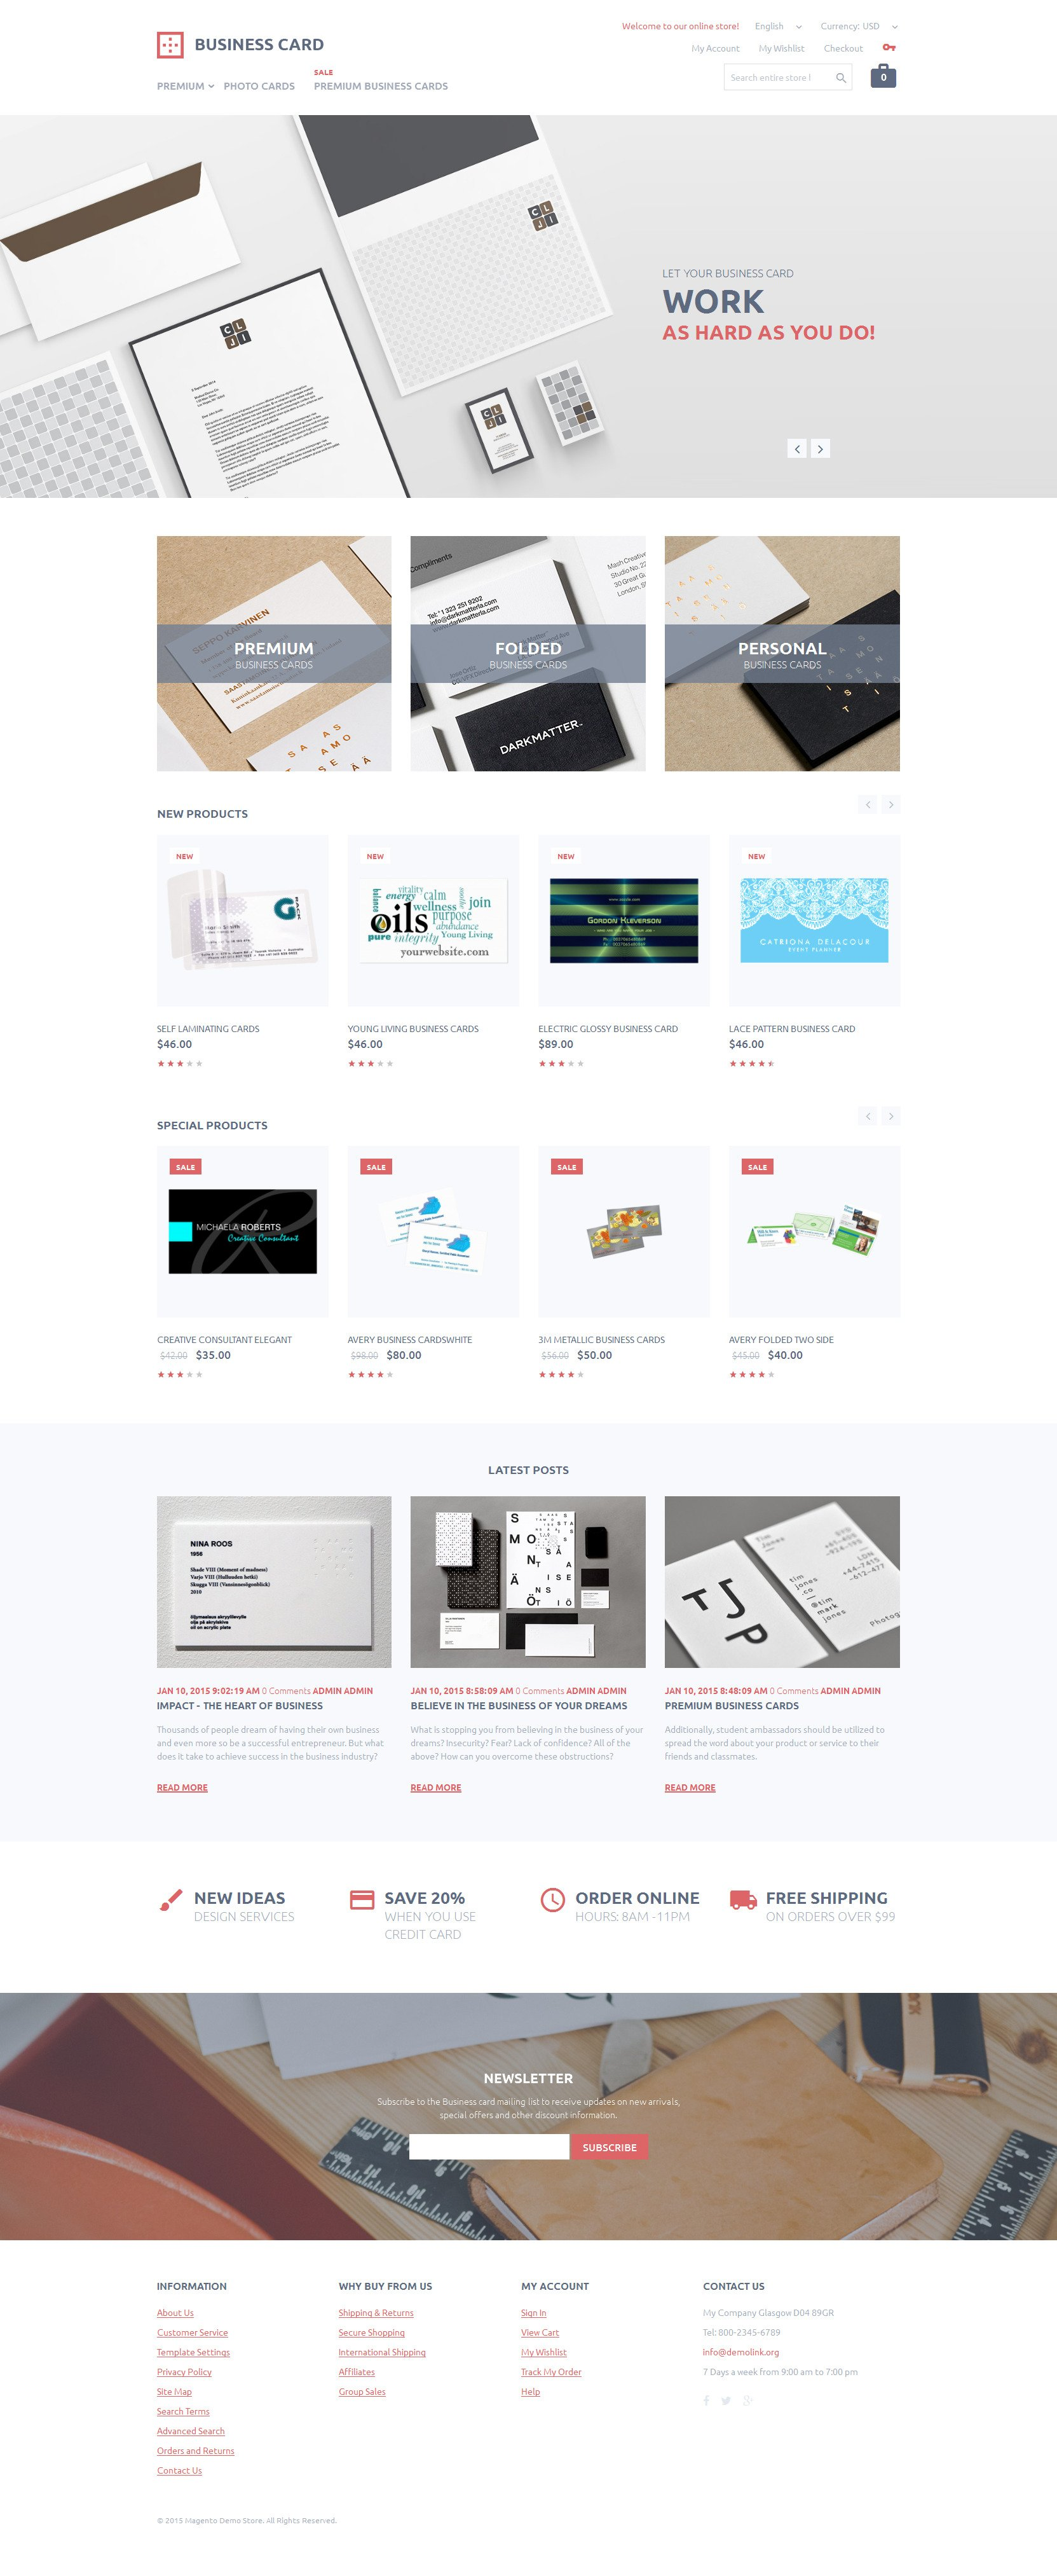 Printing services magento theme business card printing magento theme fbccfo Images